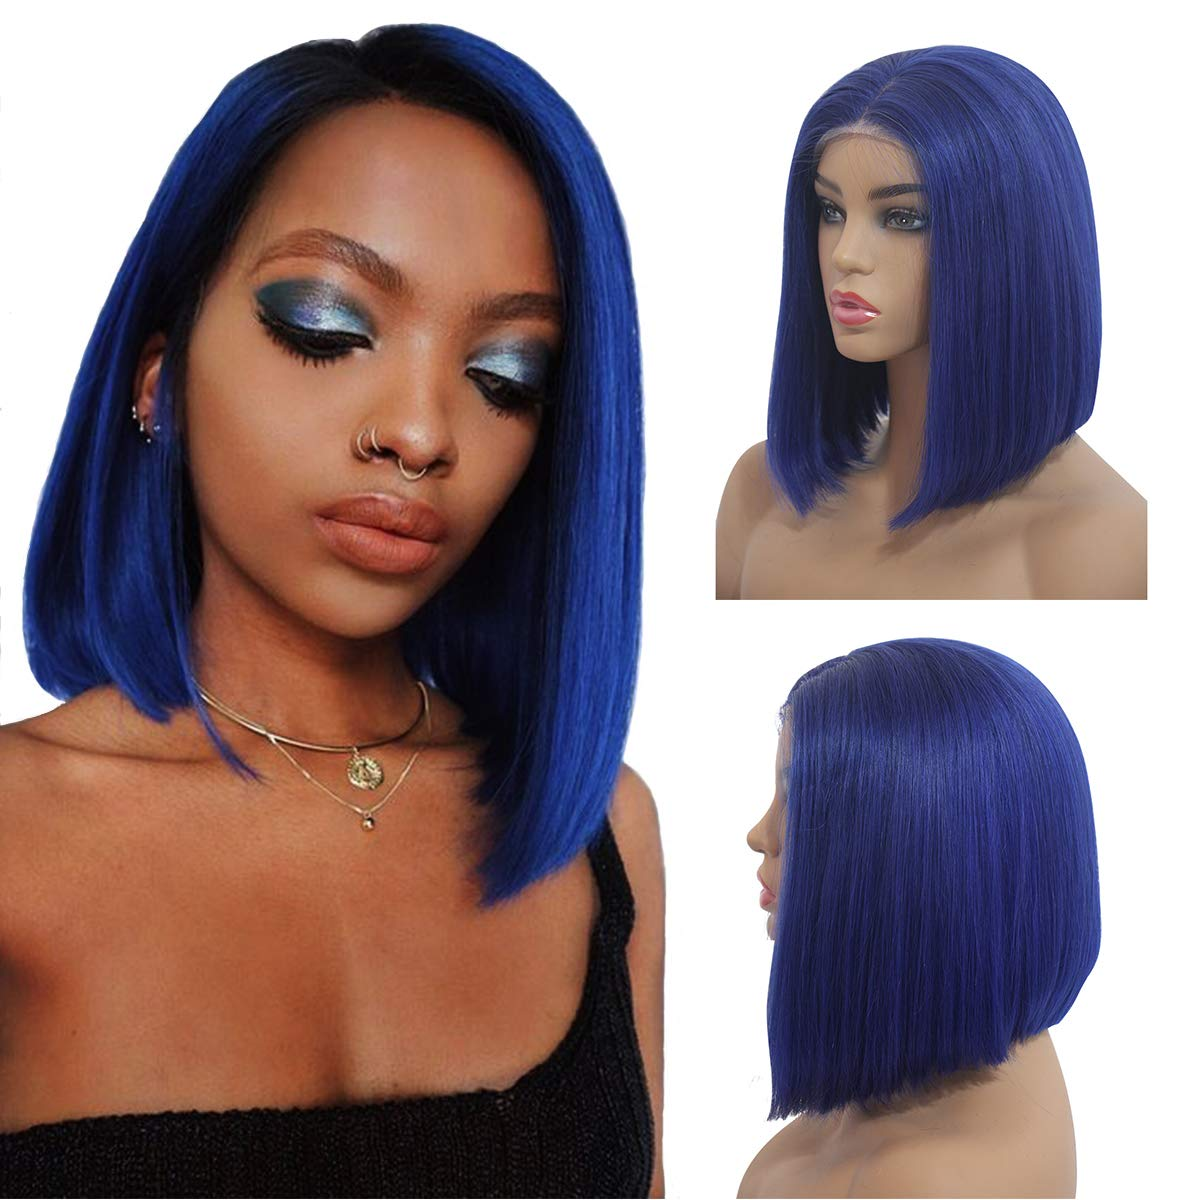 Amazon.com : Human Hair Lace Front Bob Wigs Middle Part Short Asymmetrical  Lace Frontal Wigs Glueless Cut Bob Wig Straight Hair 8